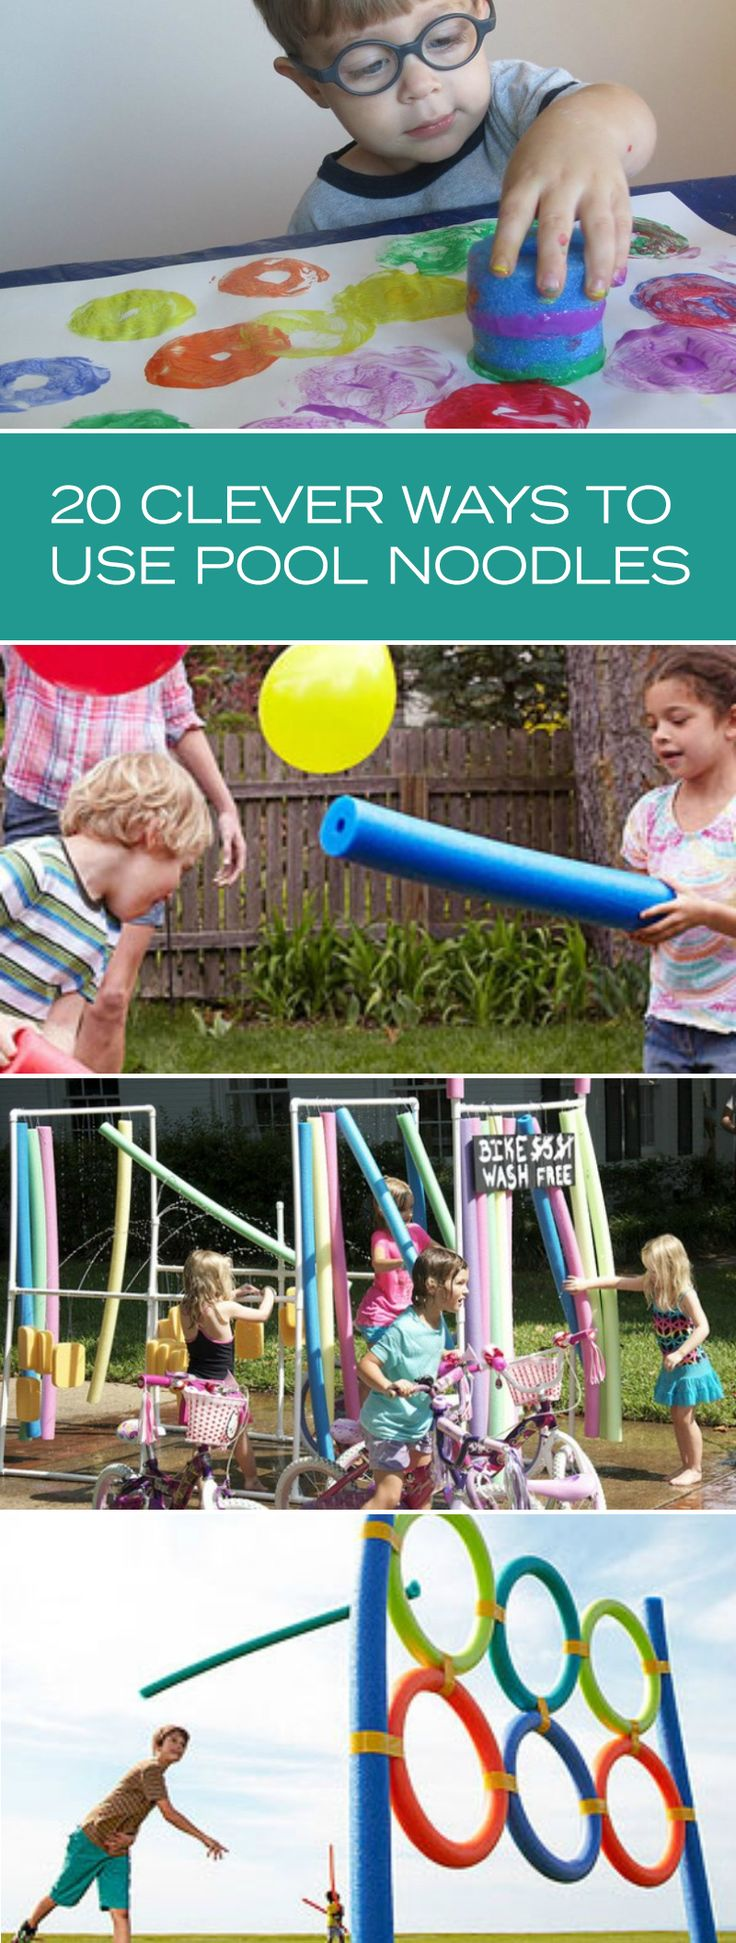 There are so many crafts and games you can make with a classic pool noodle. From obstacle courses to super sprinklers, the DIYs are endless!